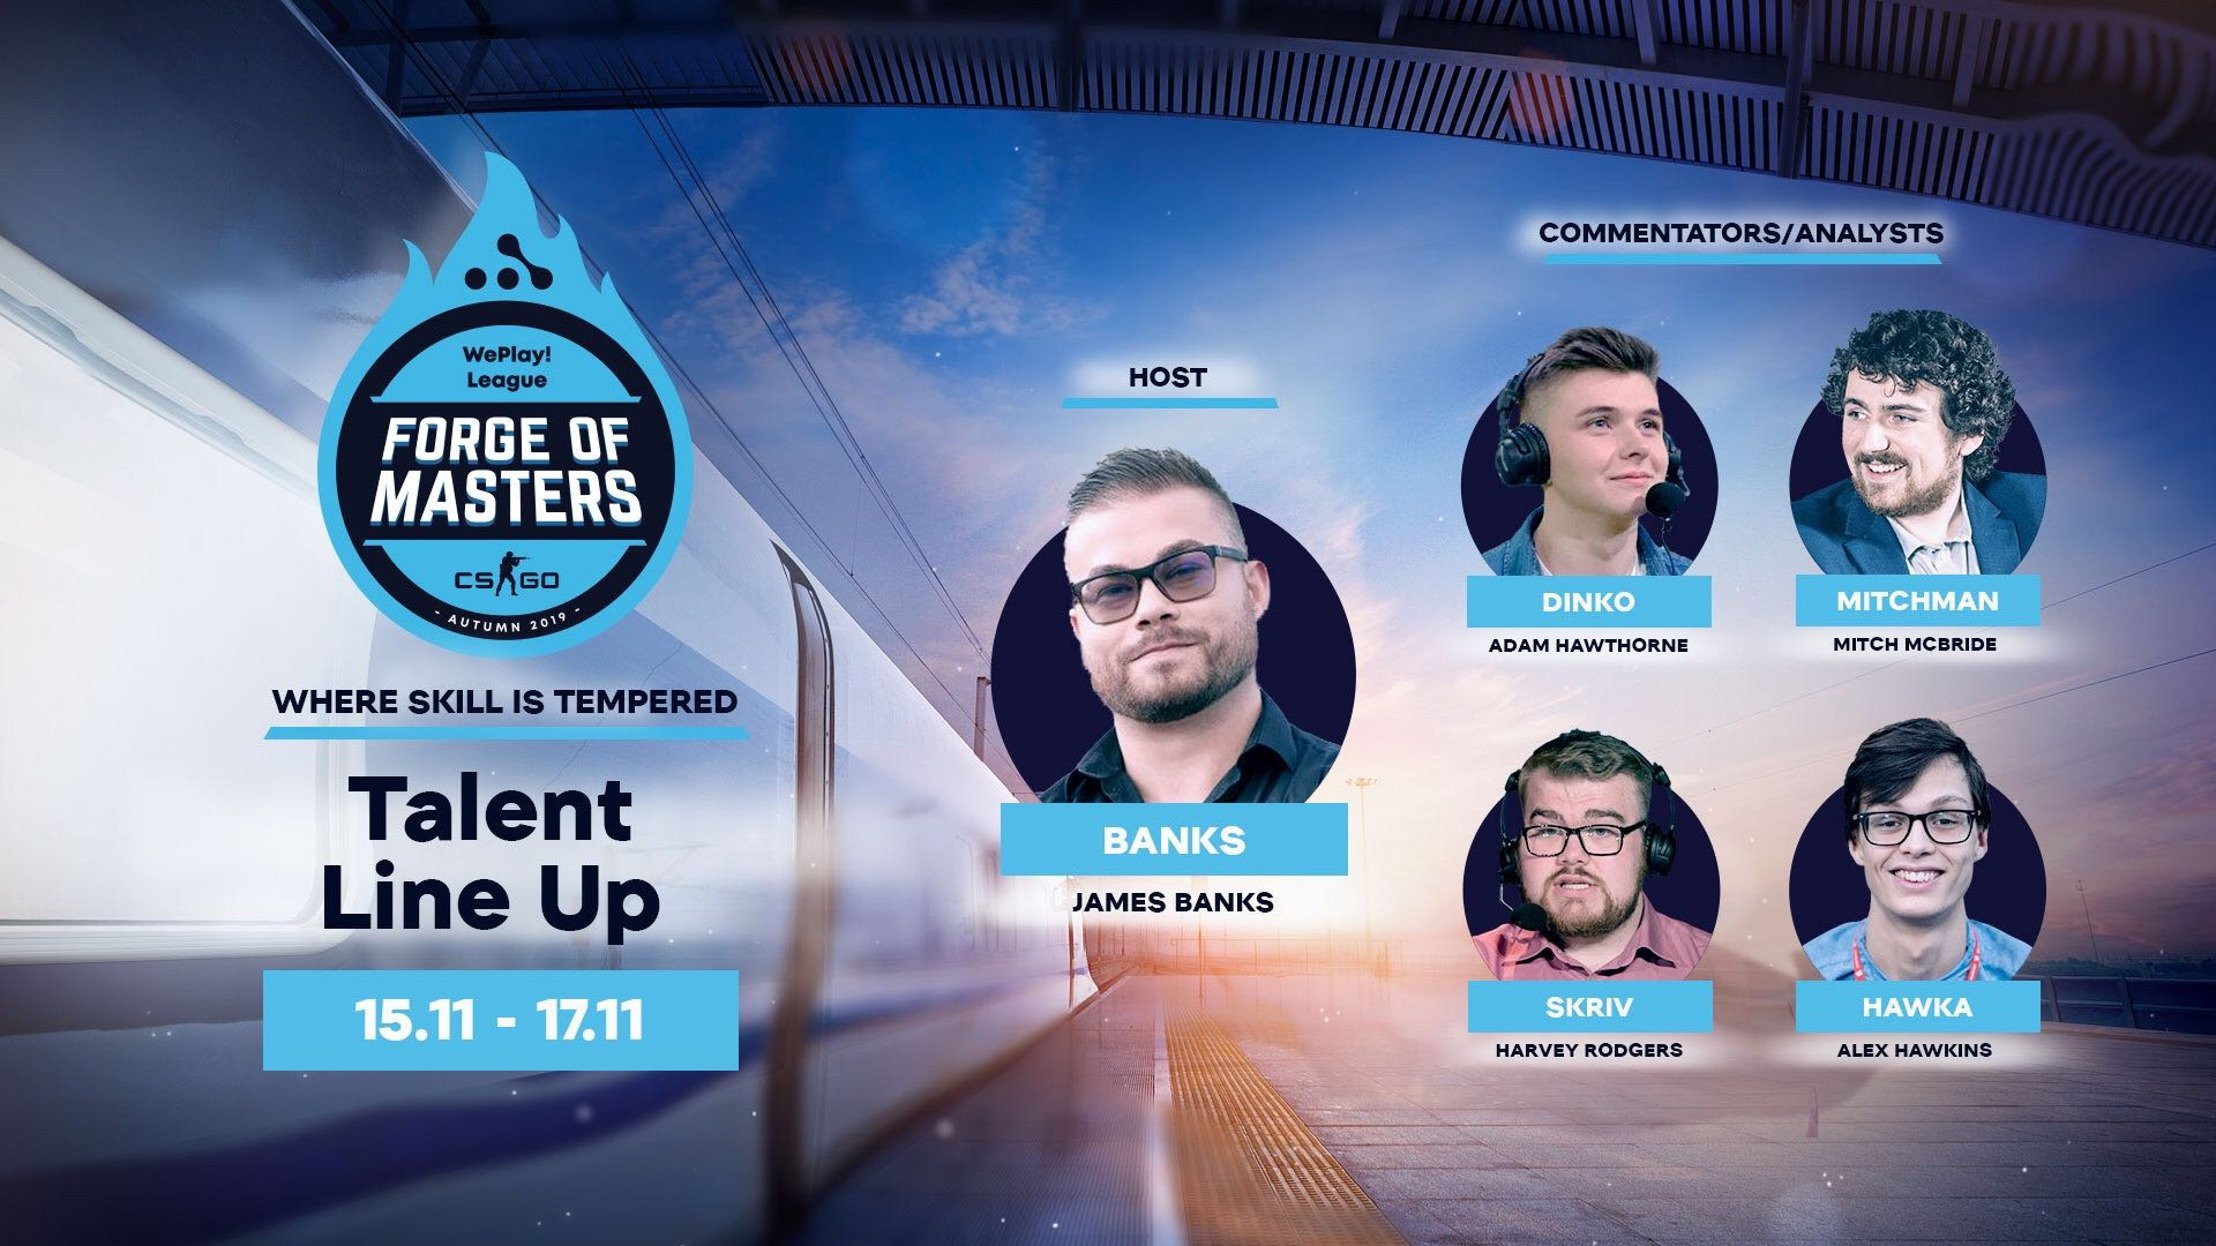 English talent team announced for the Forge of Masters WePlay! League LAN final